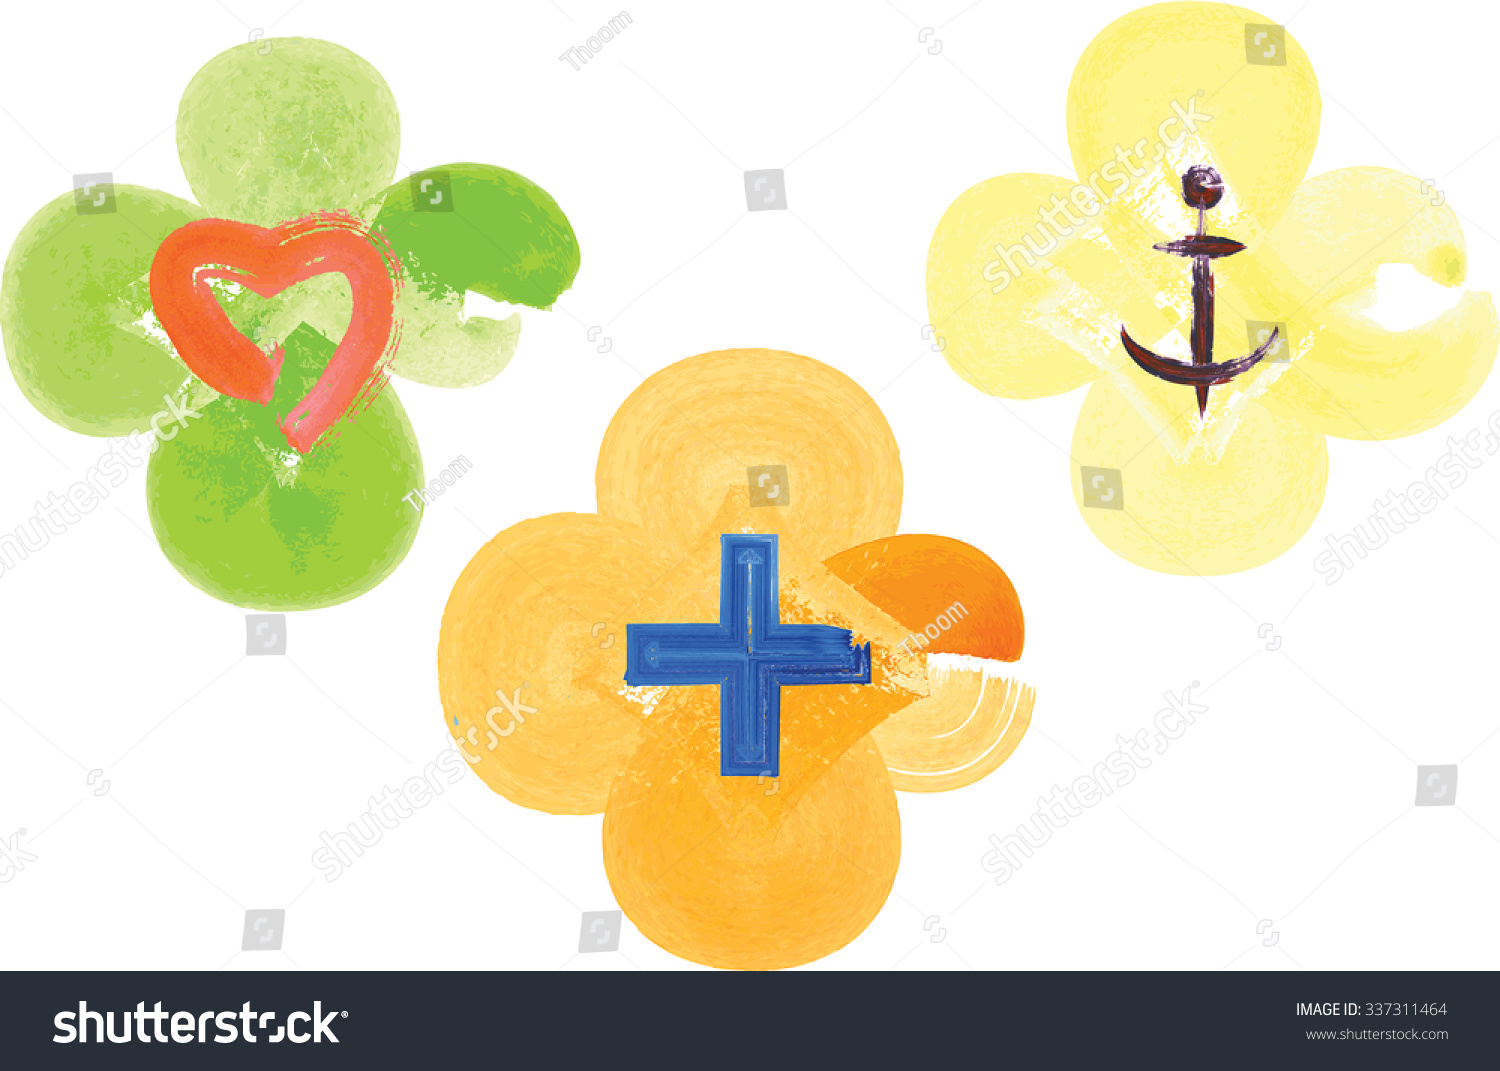 Three Artistic Watercolor Symbols Representing Three Stock